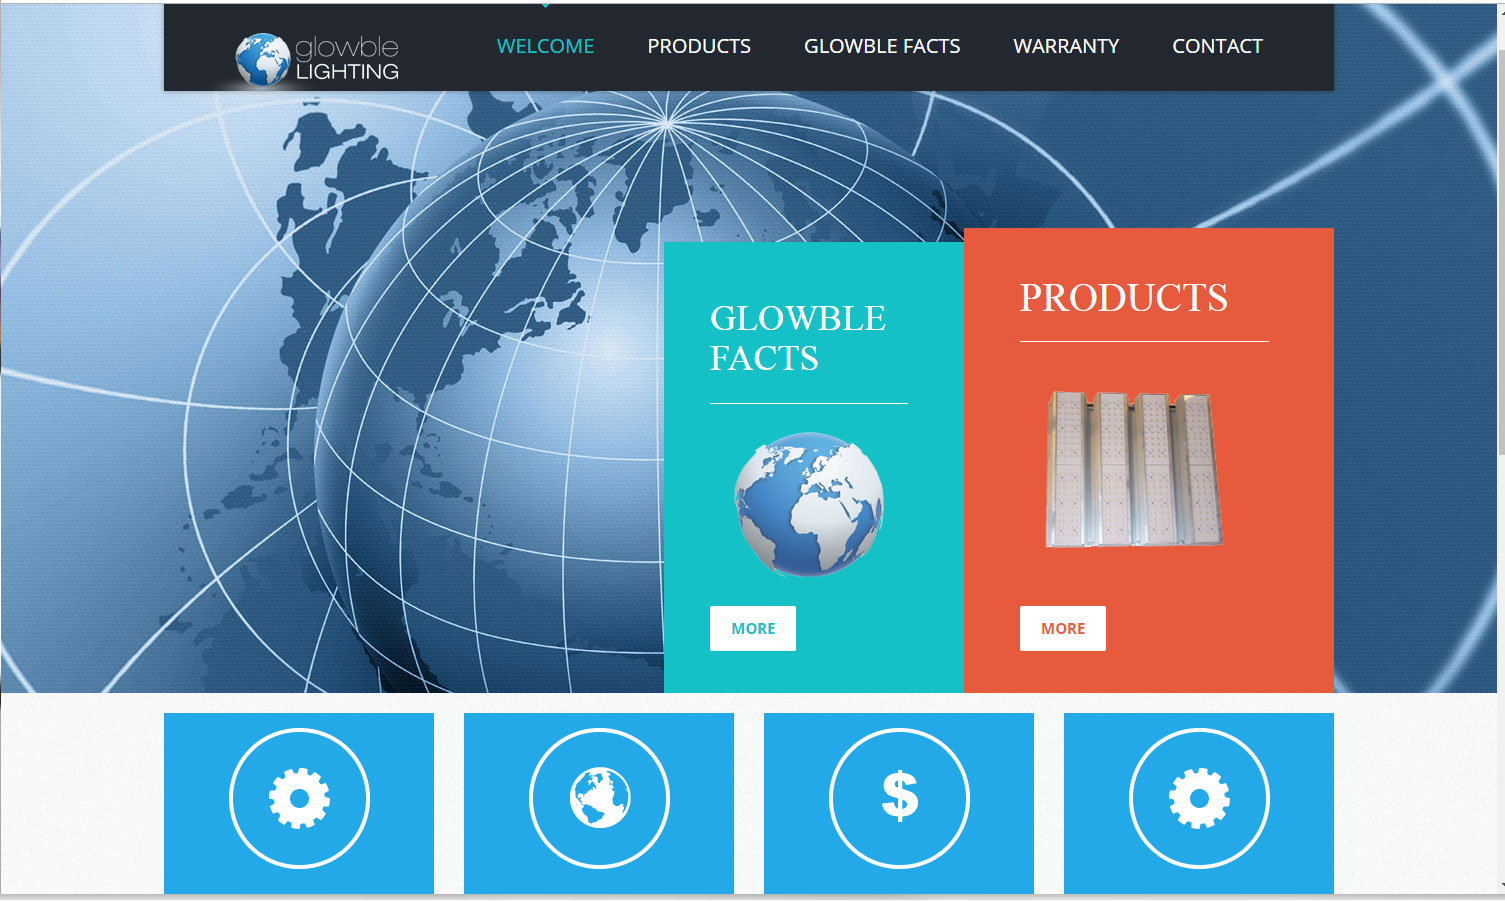 Homepage of Glowble Lighting